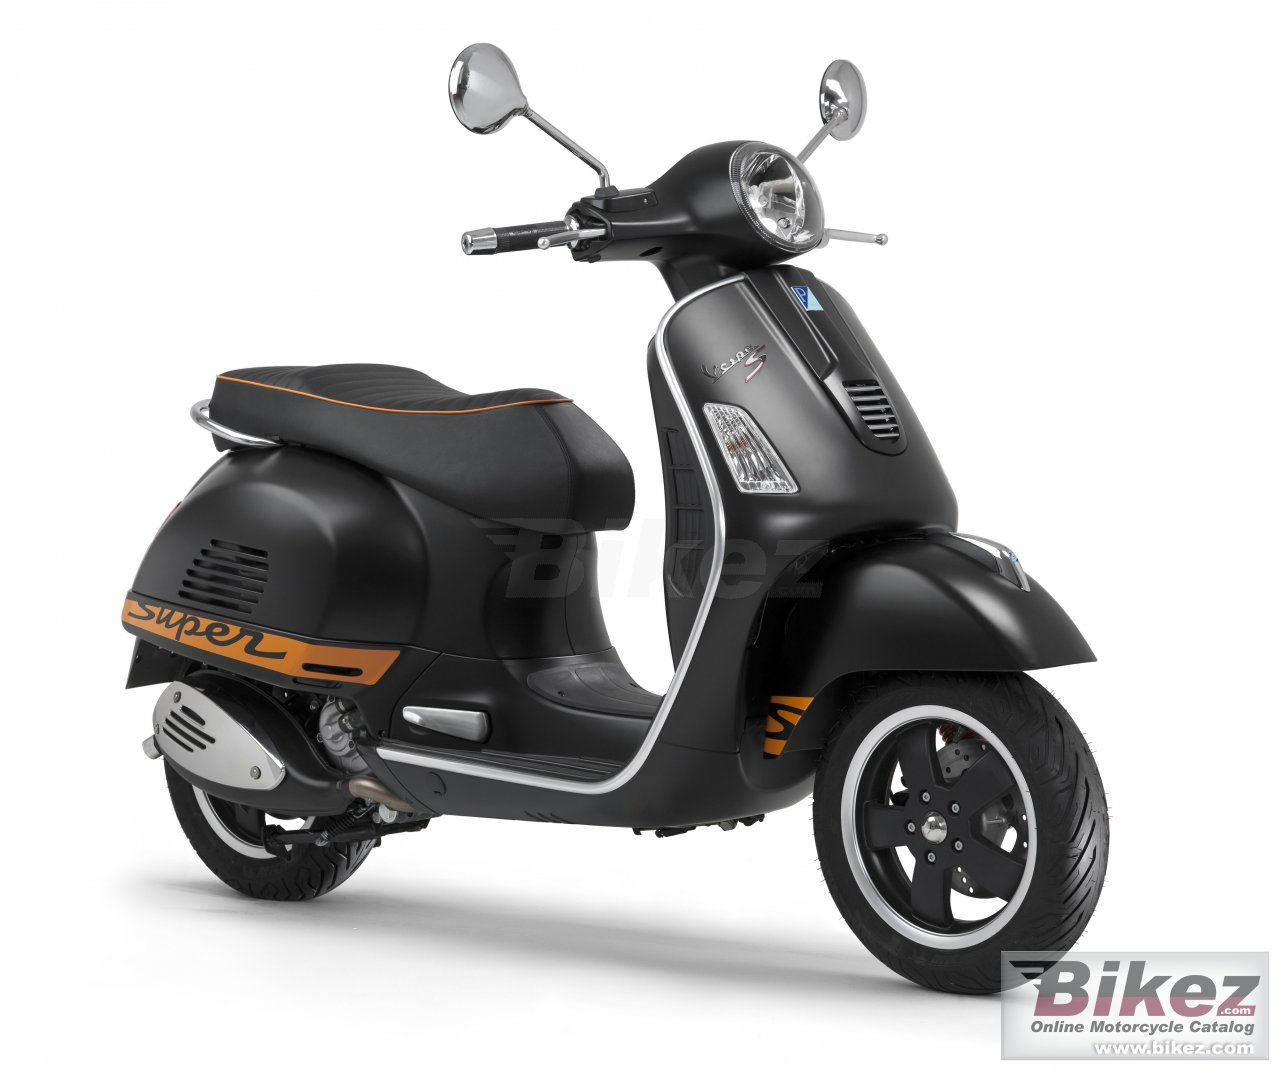 Big Vespa gts 300 super sport se picture and wallpaper from Bikez.com